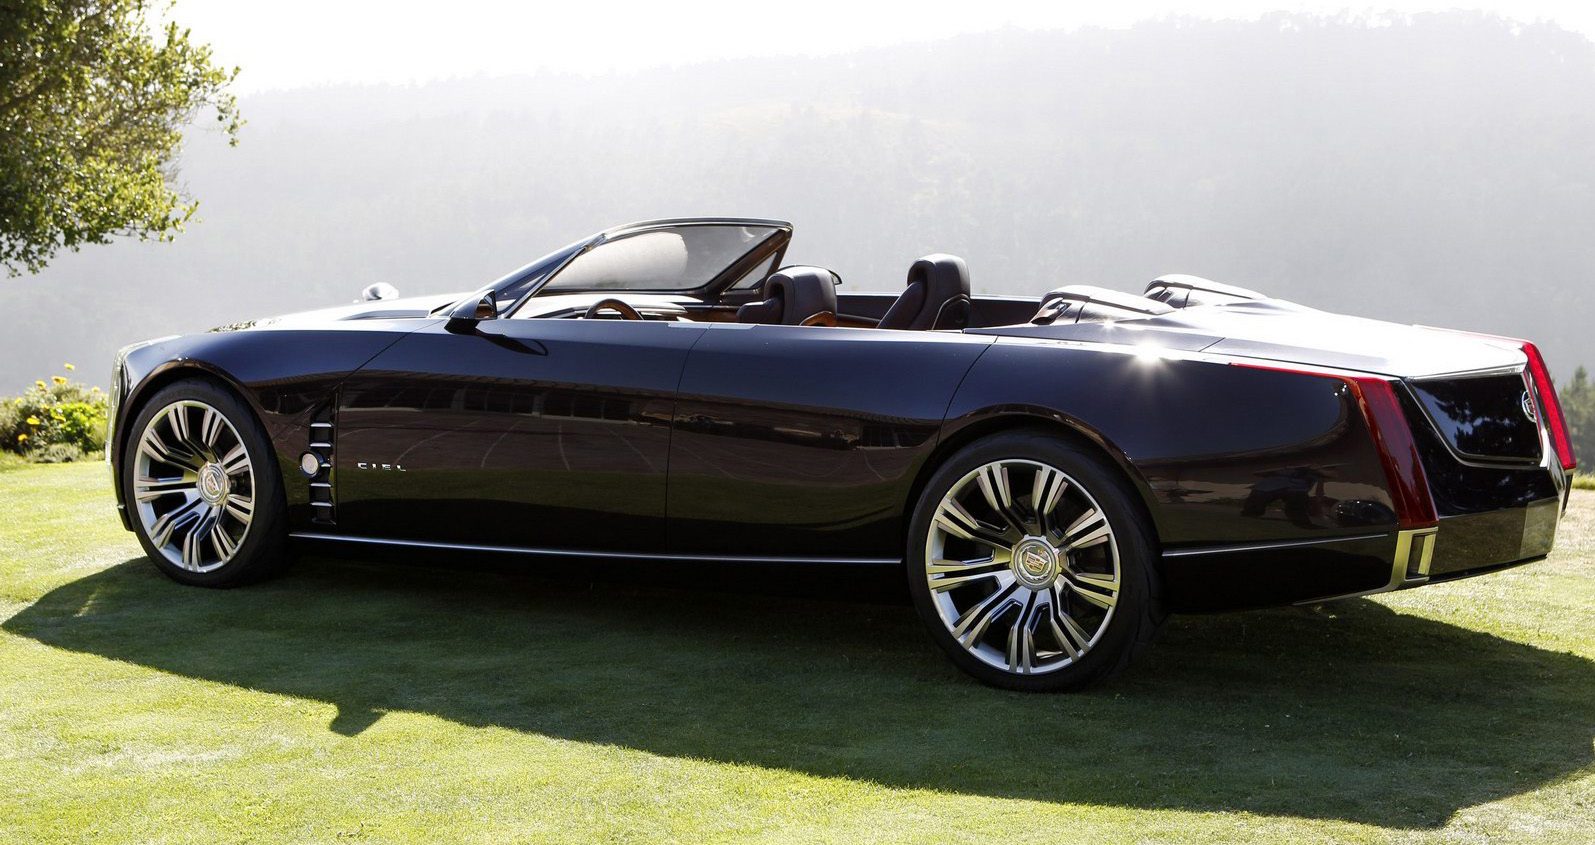 2011 cadillac ciel 4 door convertible concept unveiled. Black Bedroom Furniture Sets. Home Design Ideas